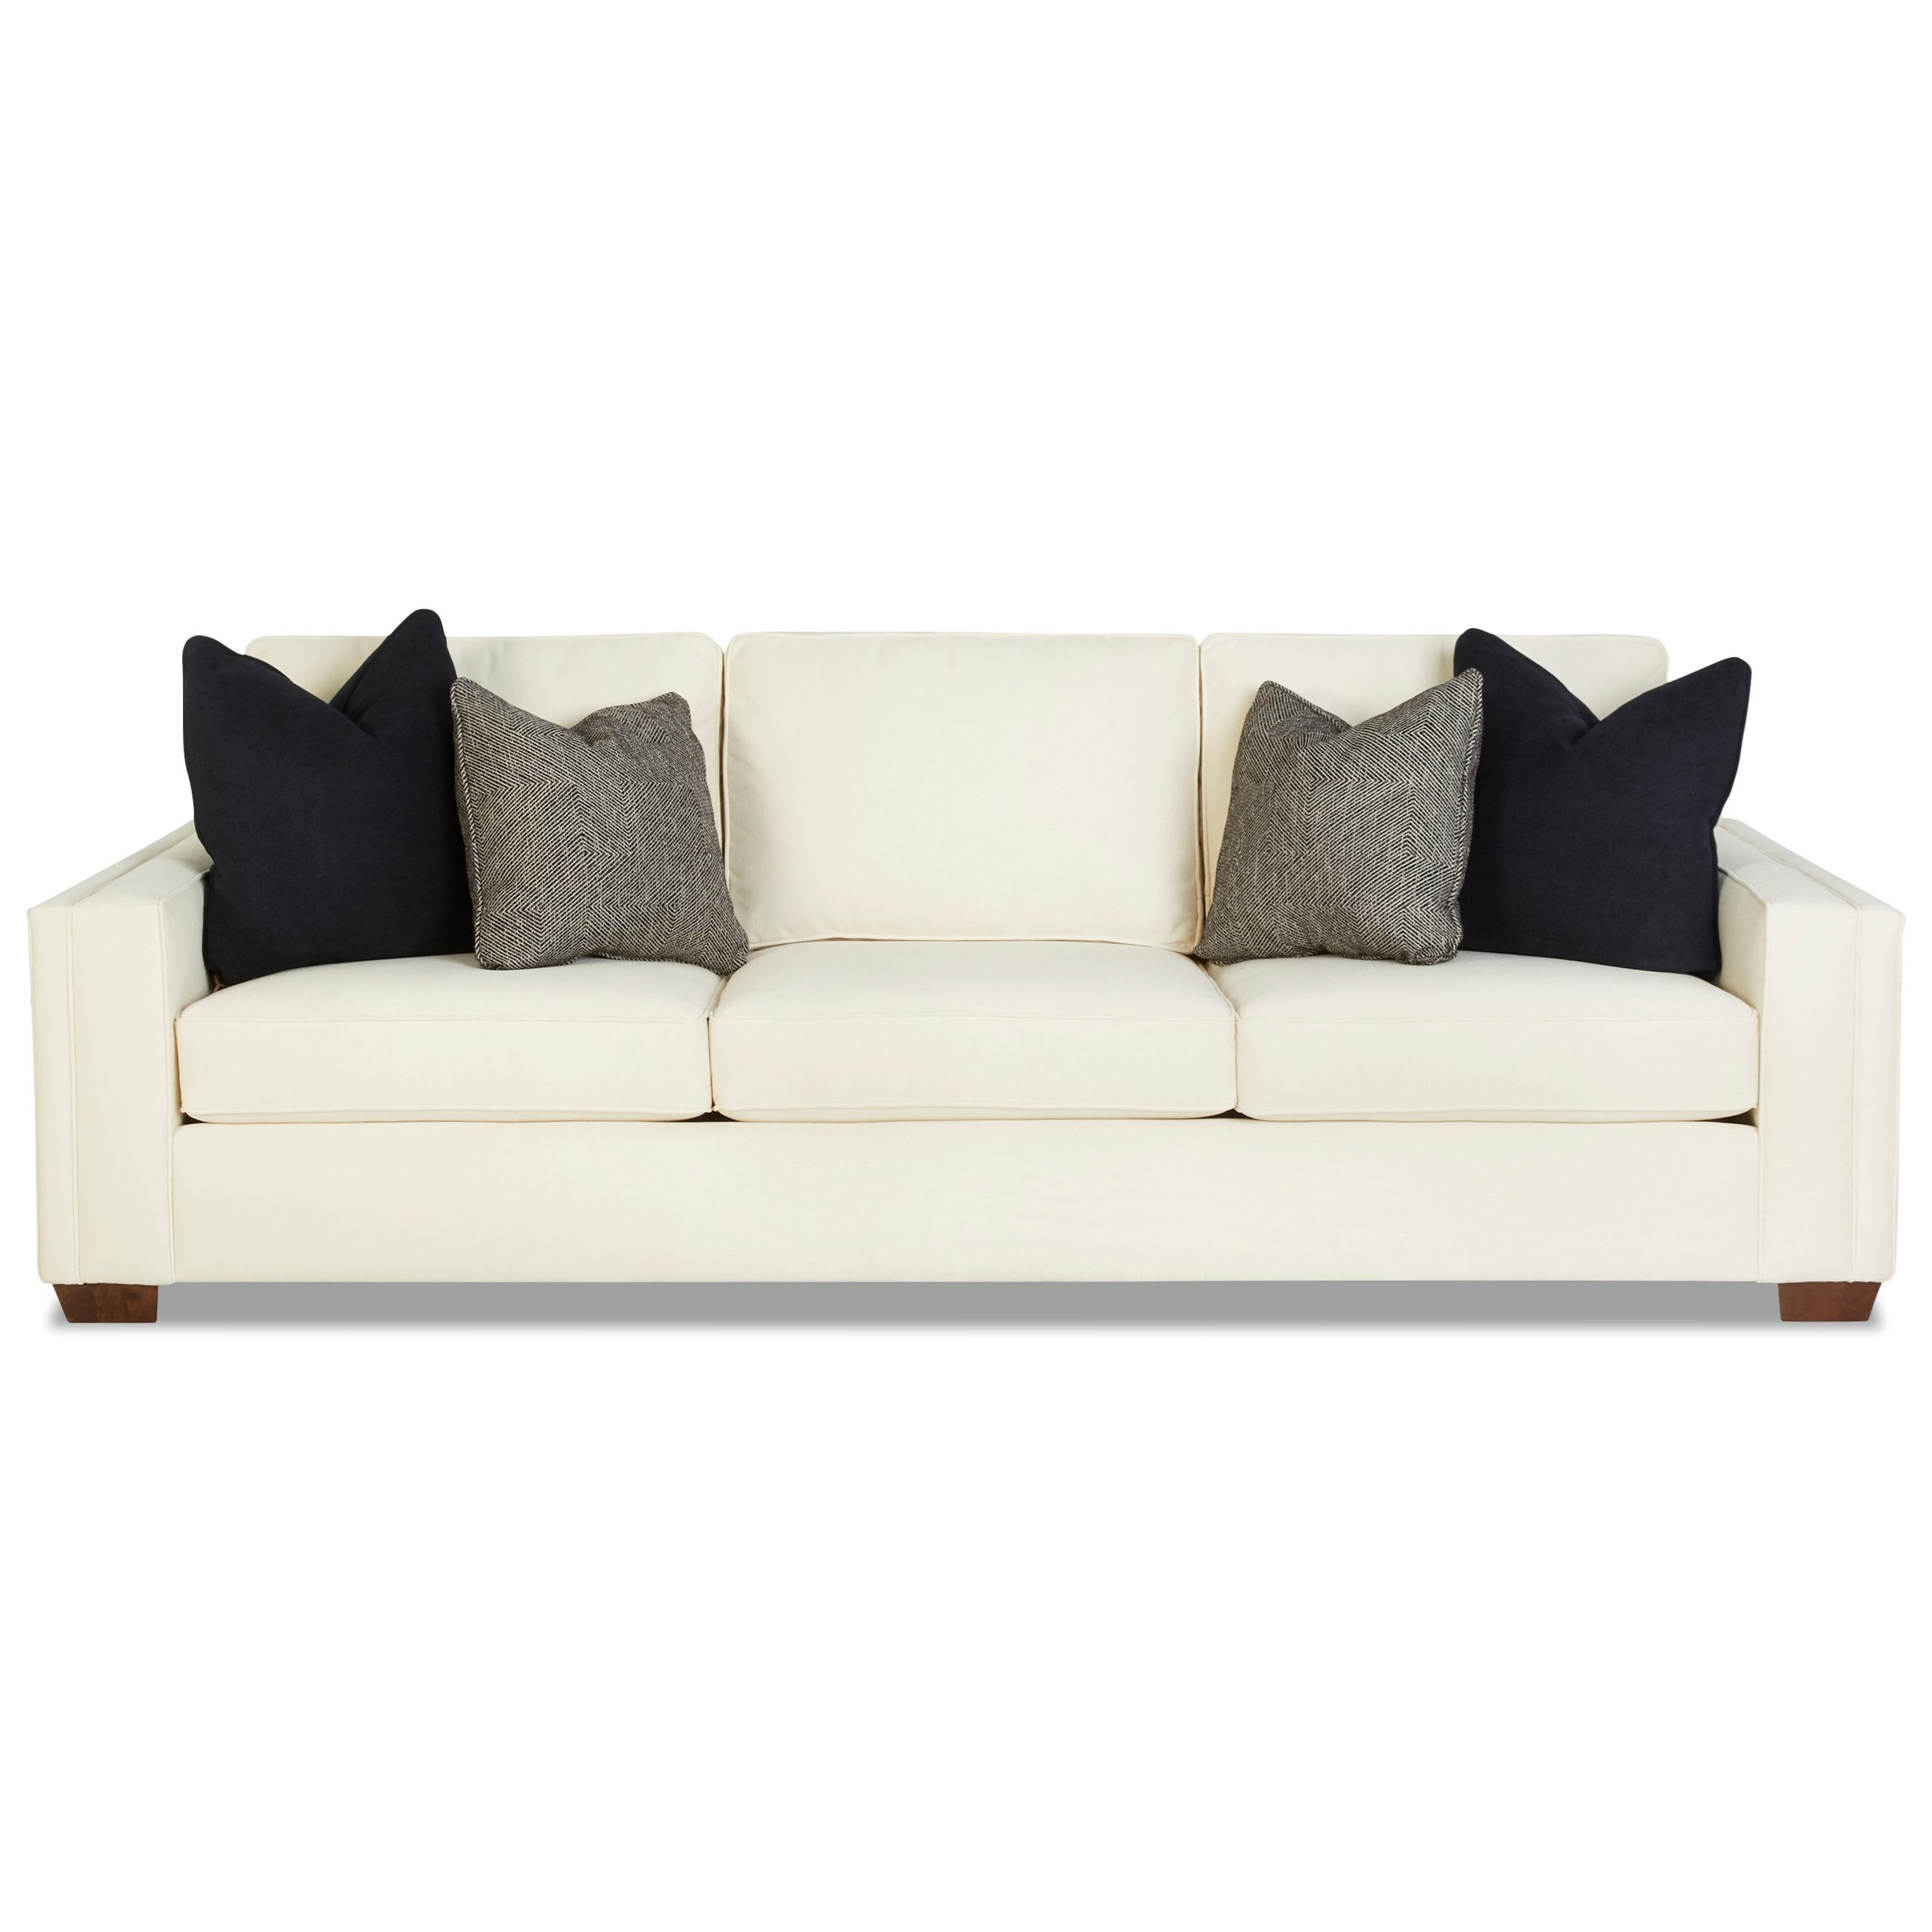 Boden Extra Large Sofa by Klaussner at Northeast Factory Direct